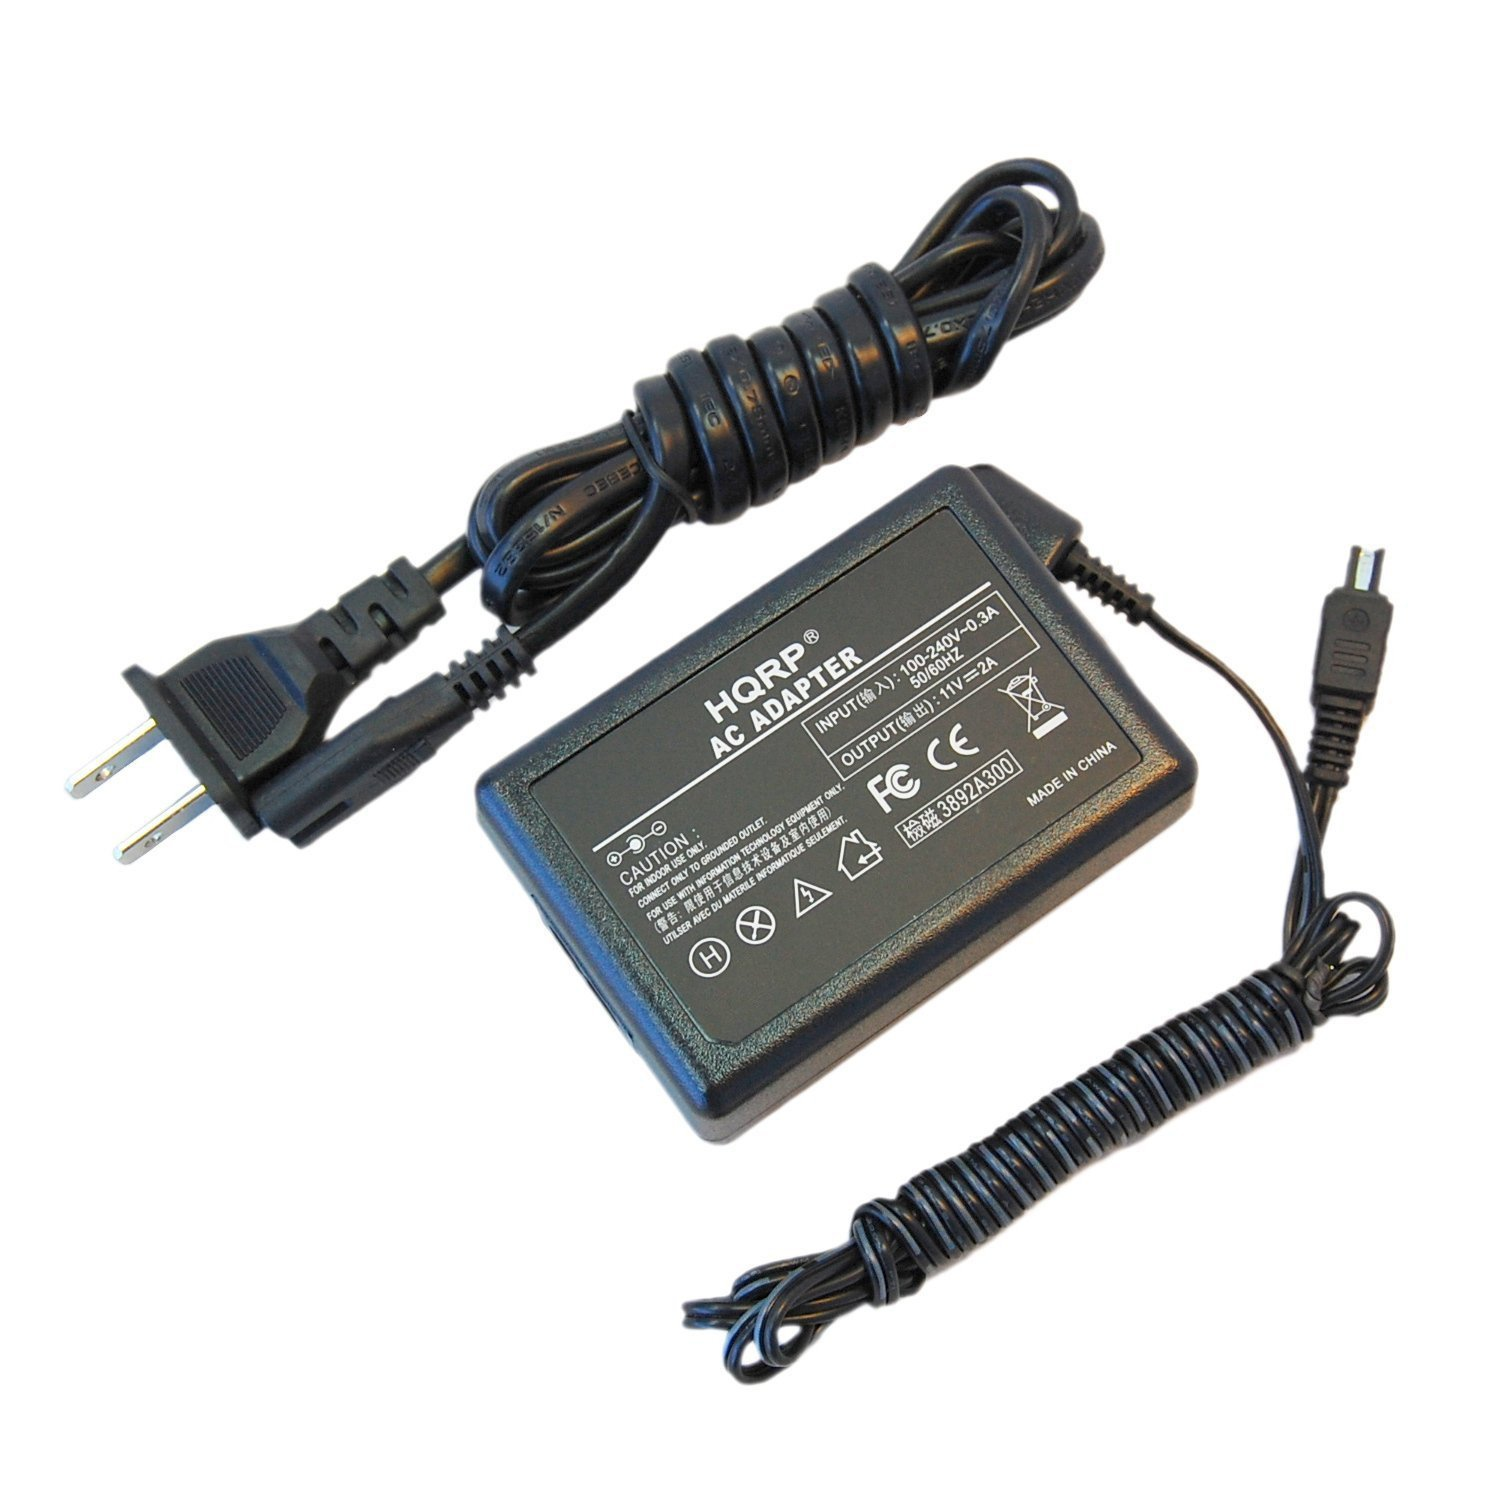 hqrp replacement ac adapter power supply for jvc everio gz mg130 rh walmart com